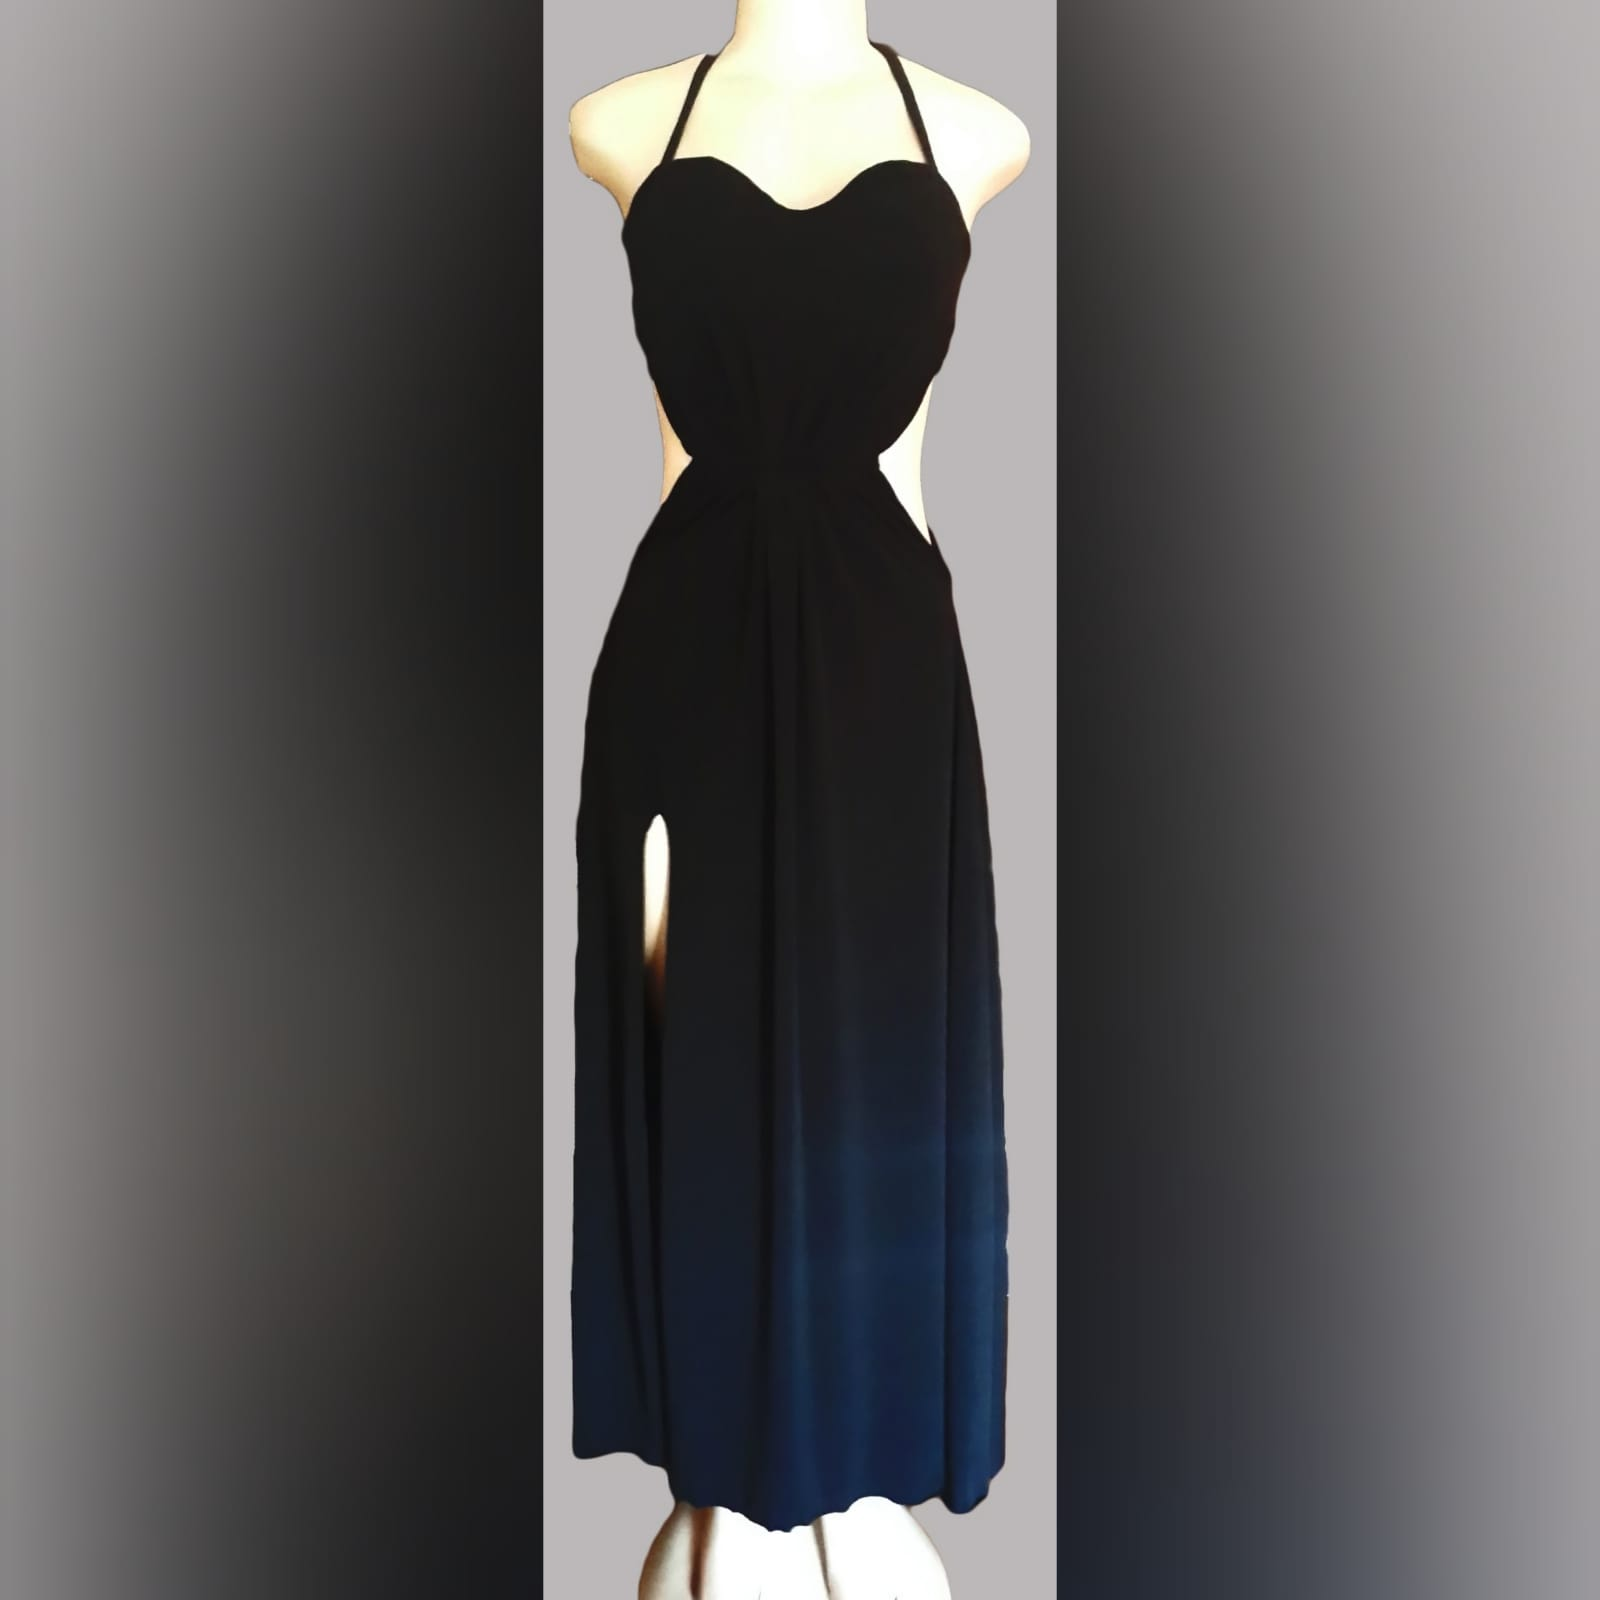 Black long flowy evening dress 4 black long flowy evening dress with side tummy openings, a slit and halter neck string